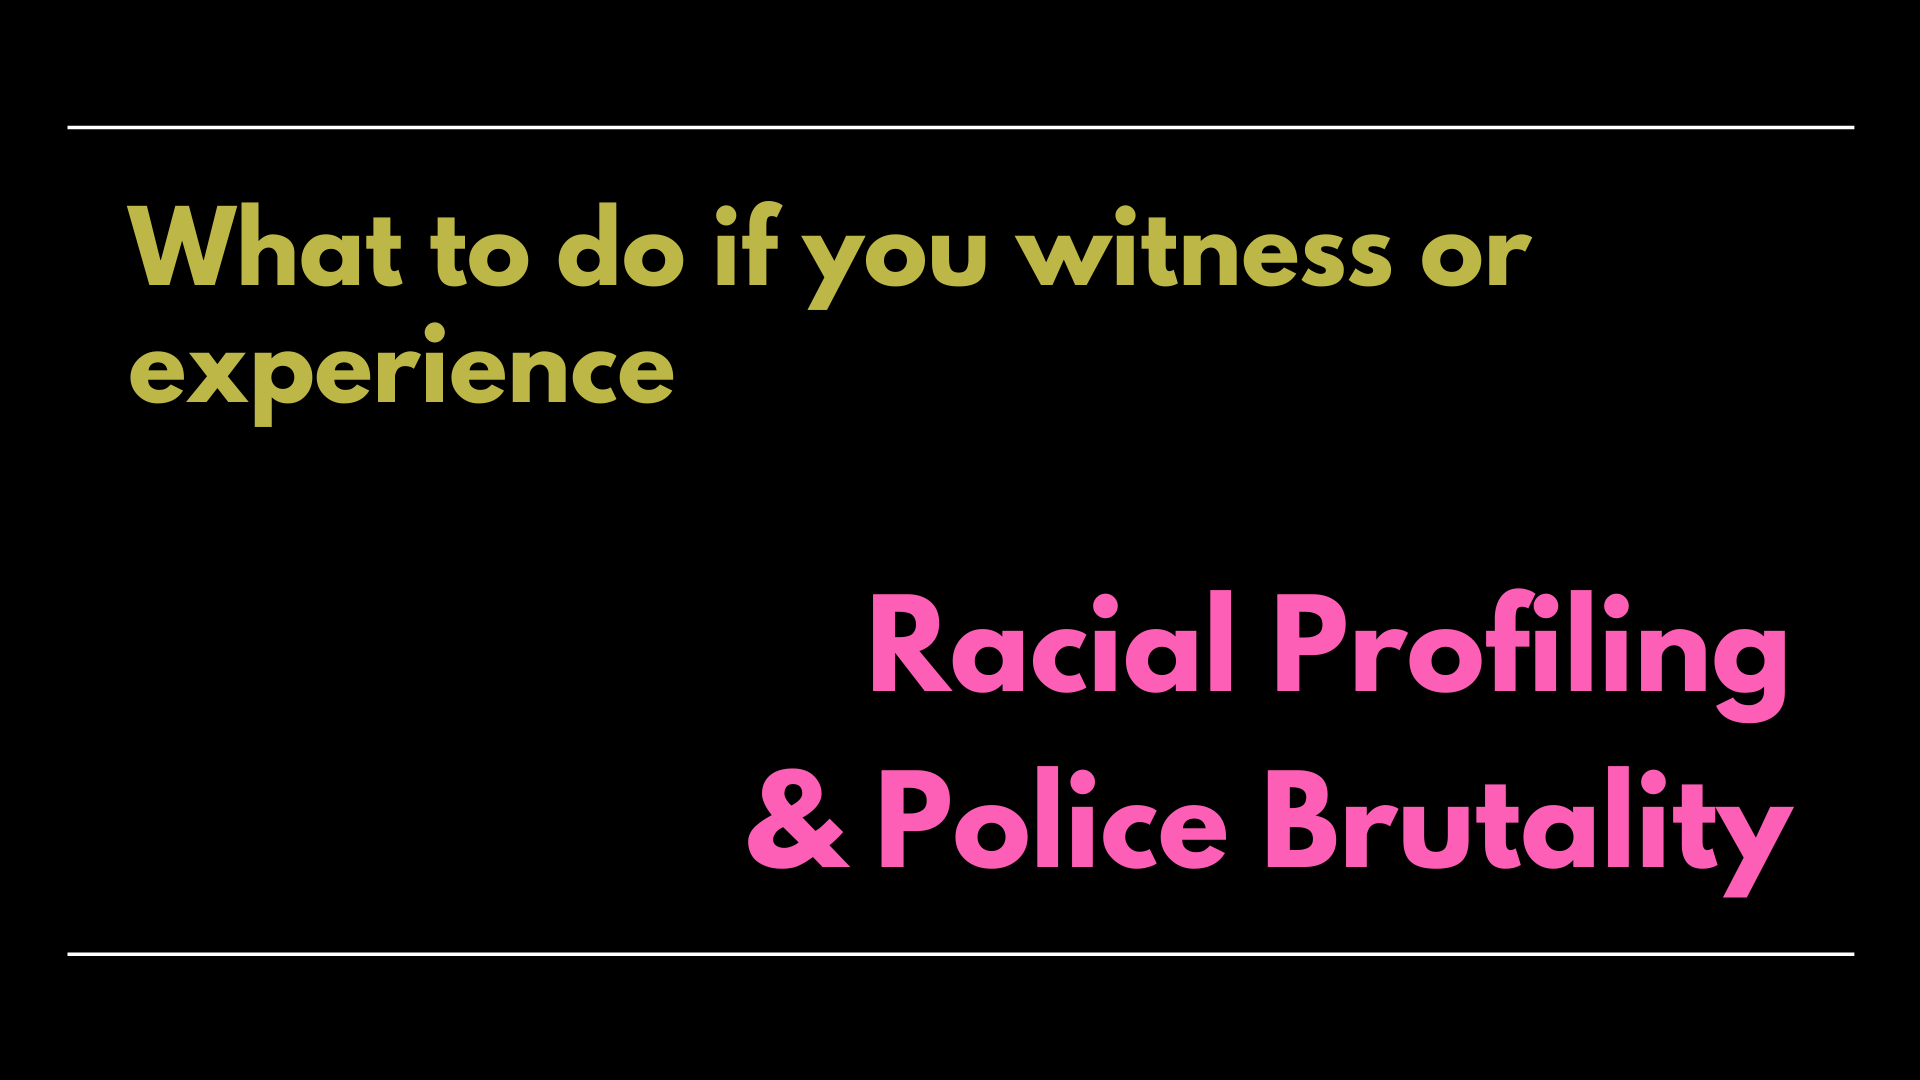 Text Graphic: What to do if you witness or experience Racial Profiling & Police Brutality